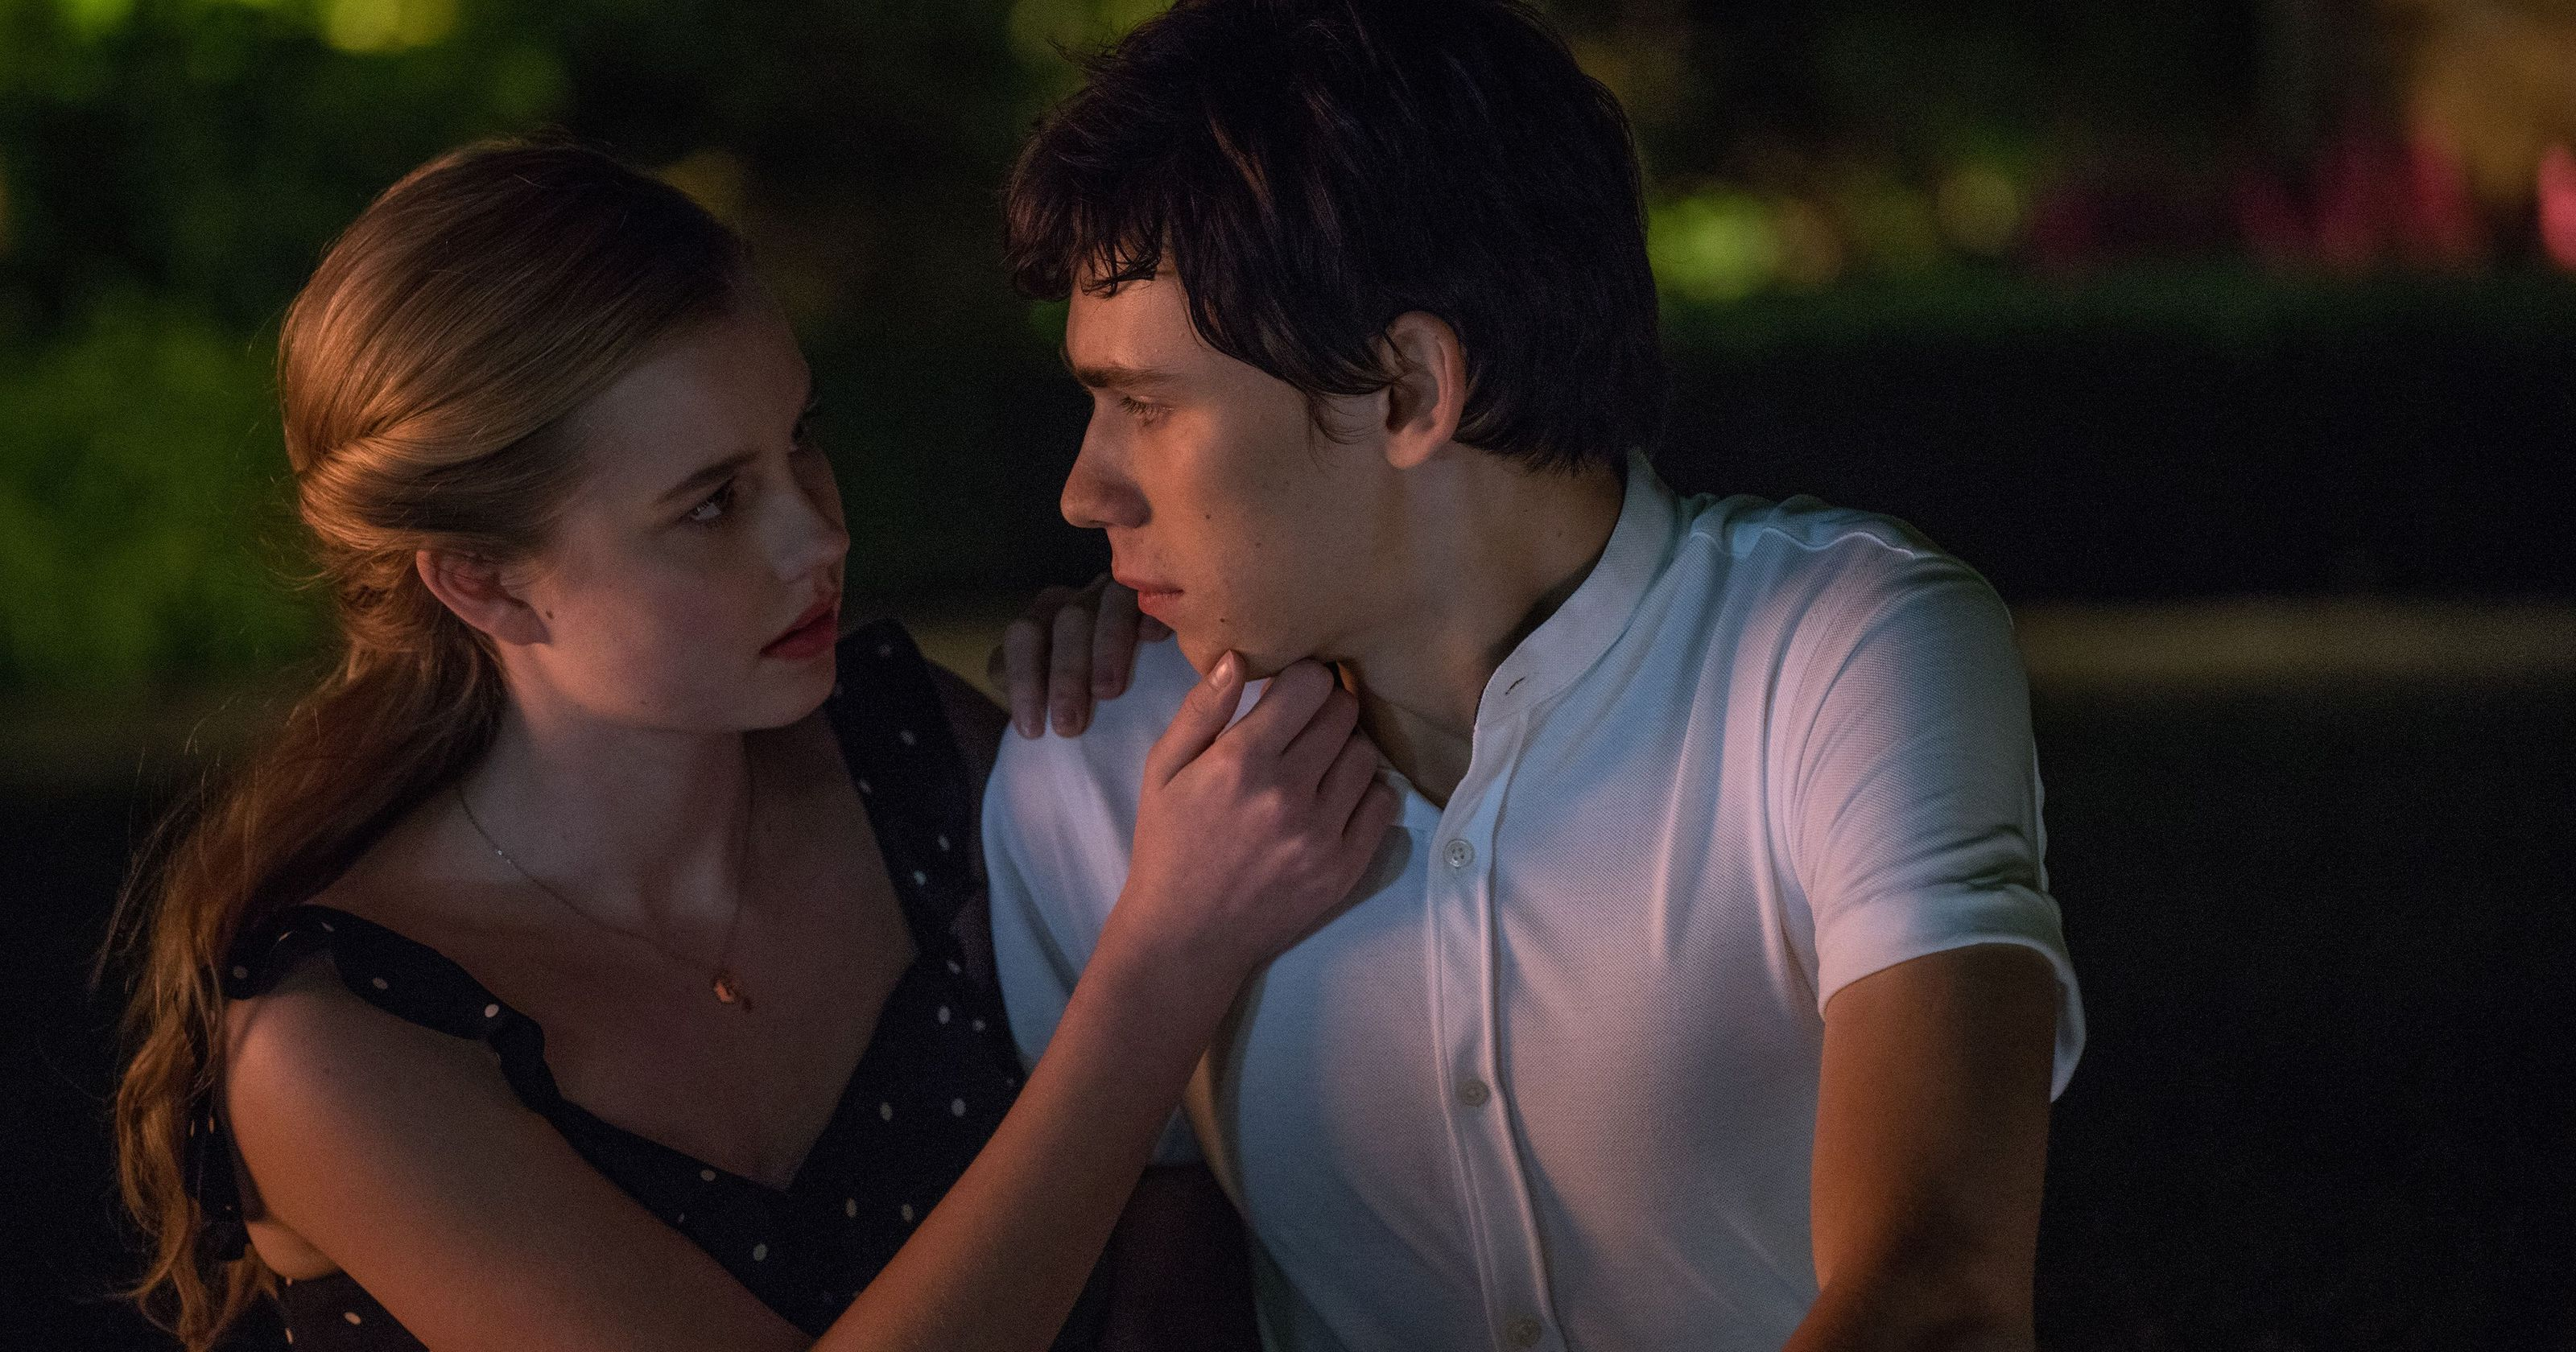 Angourie Rice and Owen Teague in the film.